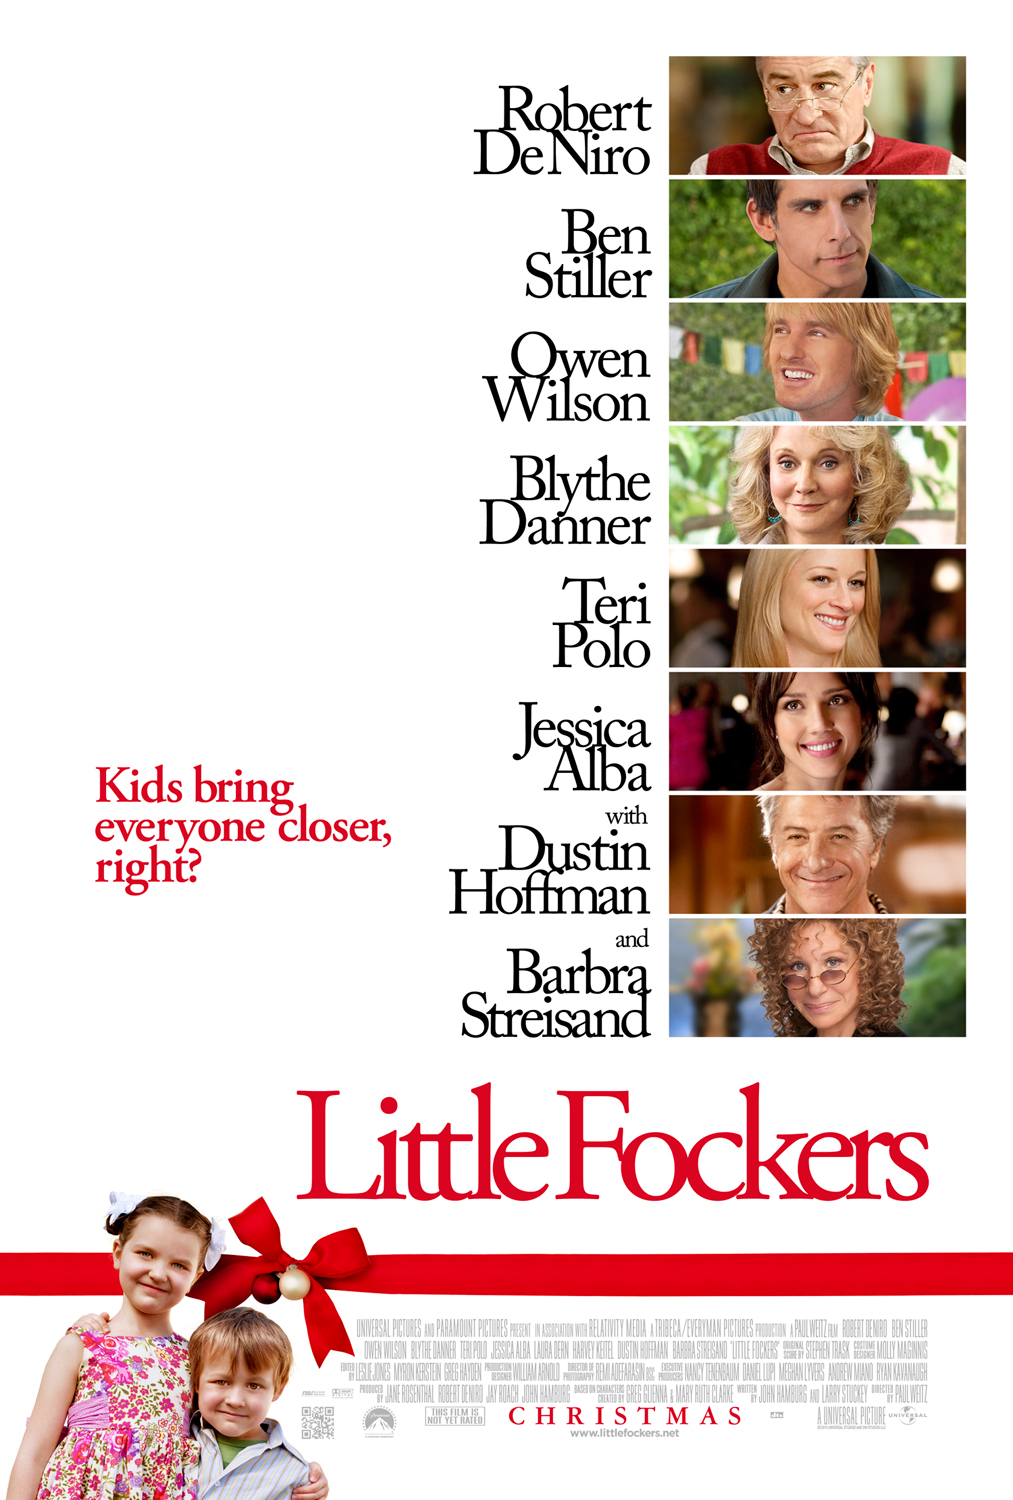 meet the fockers little jack actor and comedian